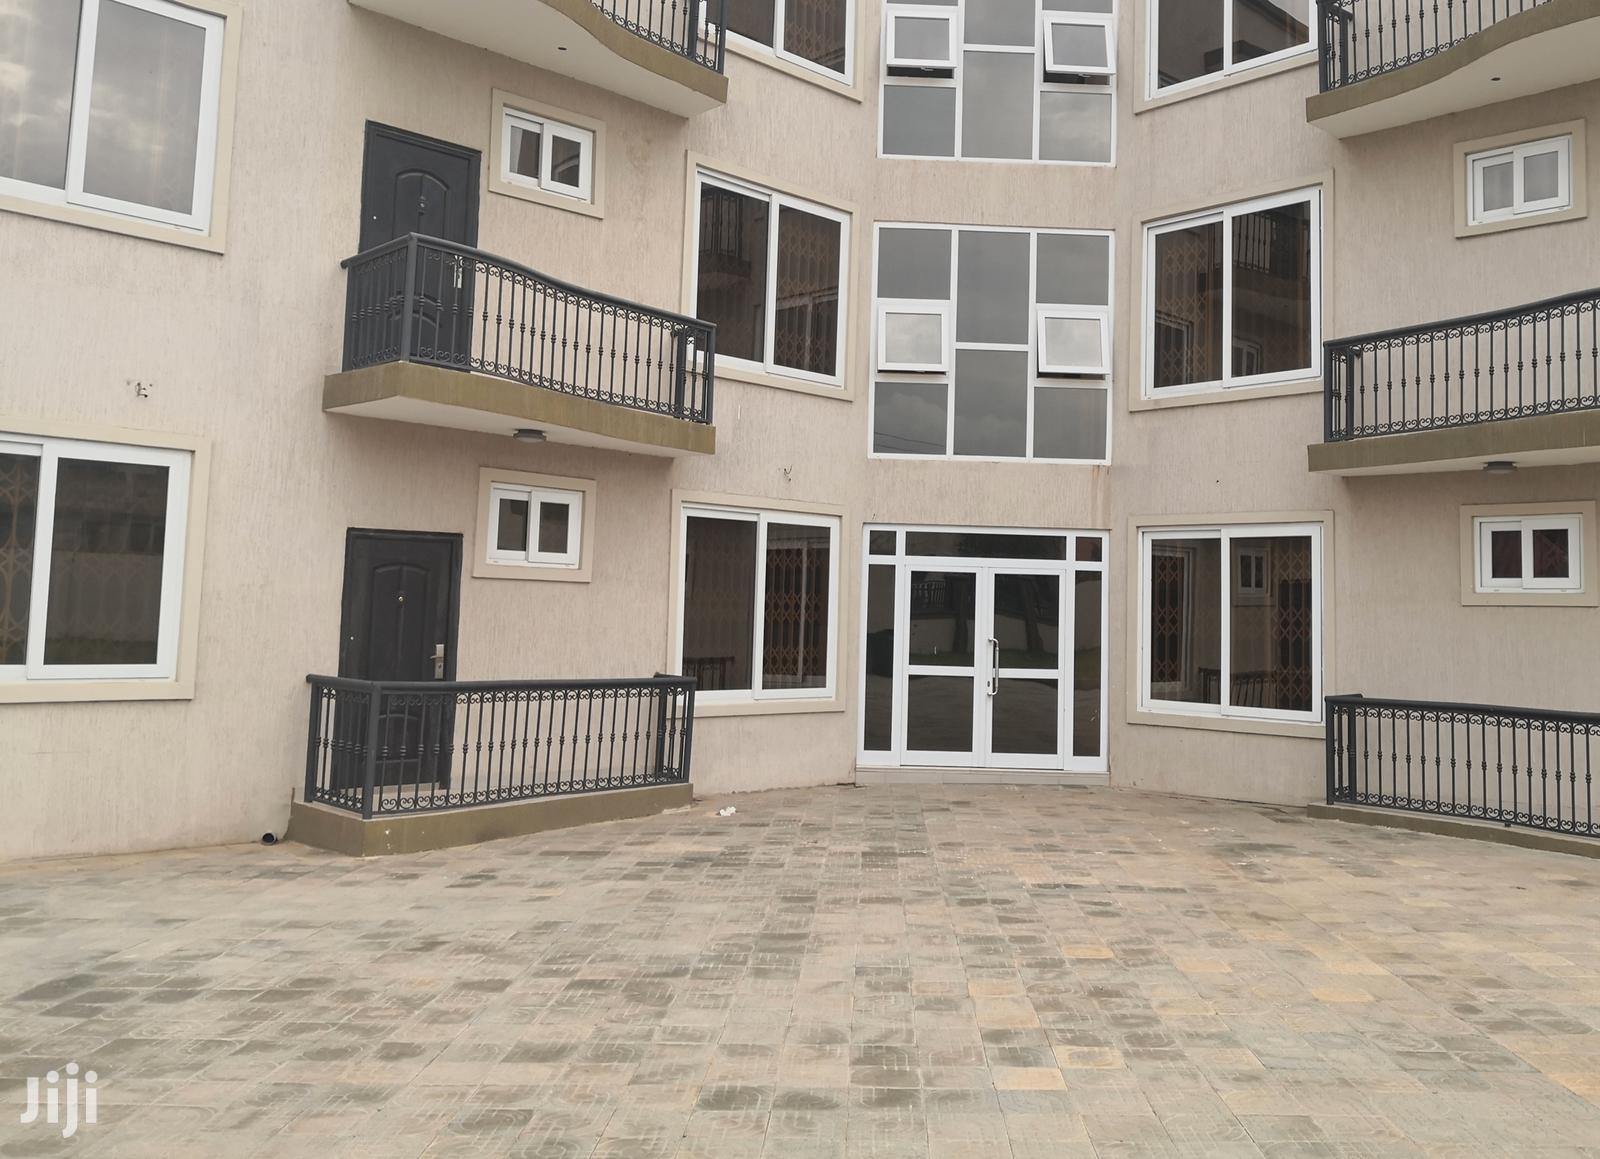 2 Bedrooms Apartment At North Legon | Houses & Apartments For Rent for sale in East Legon, Greater Accra, Ghana